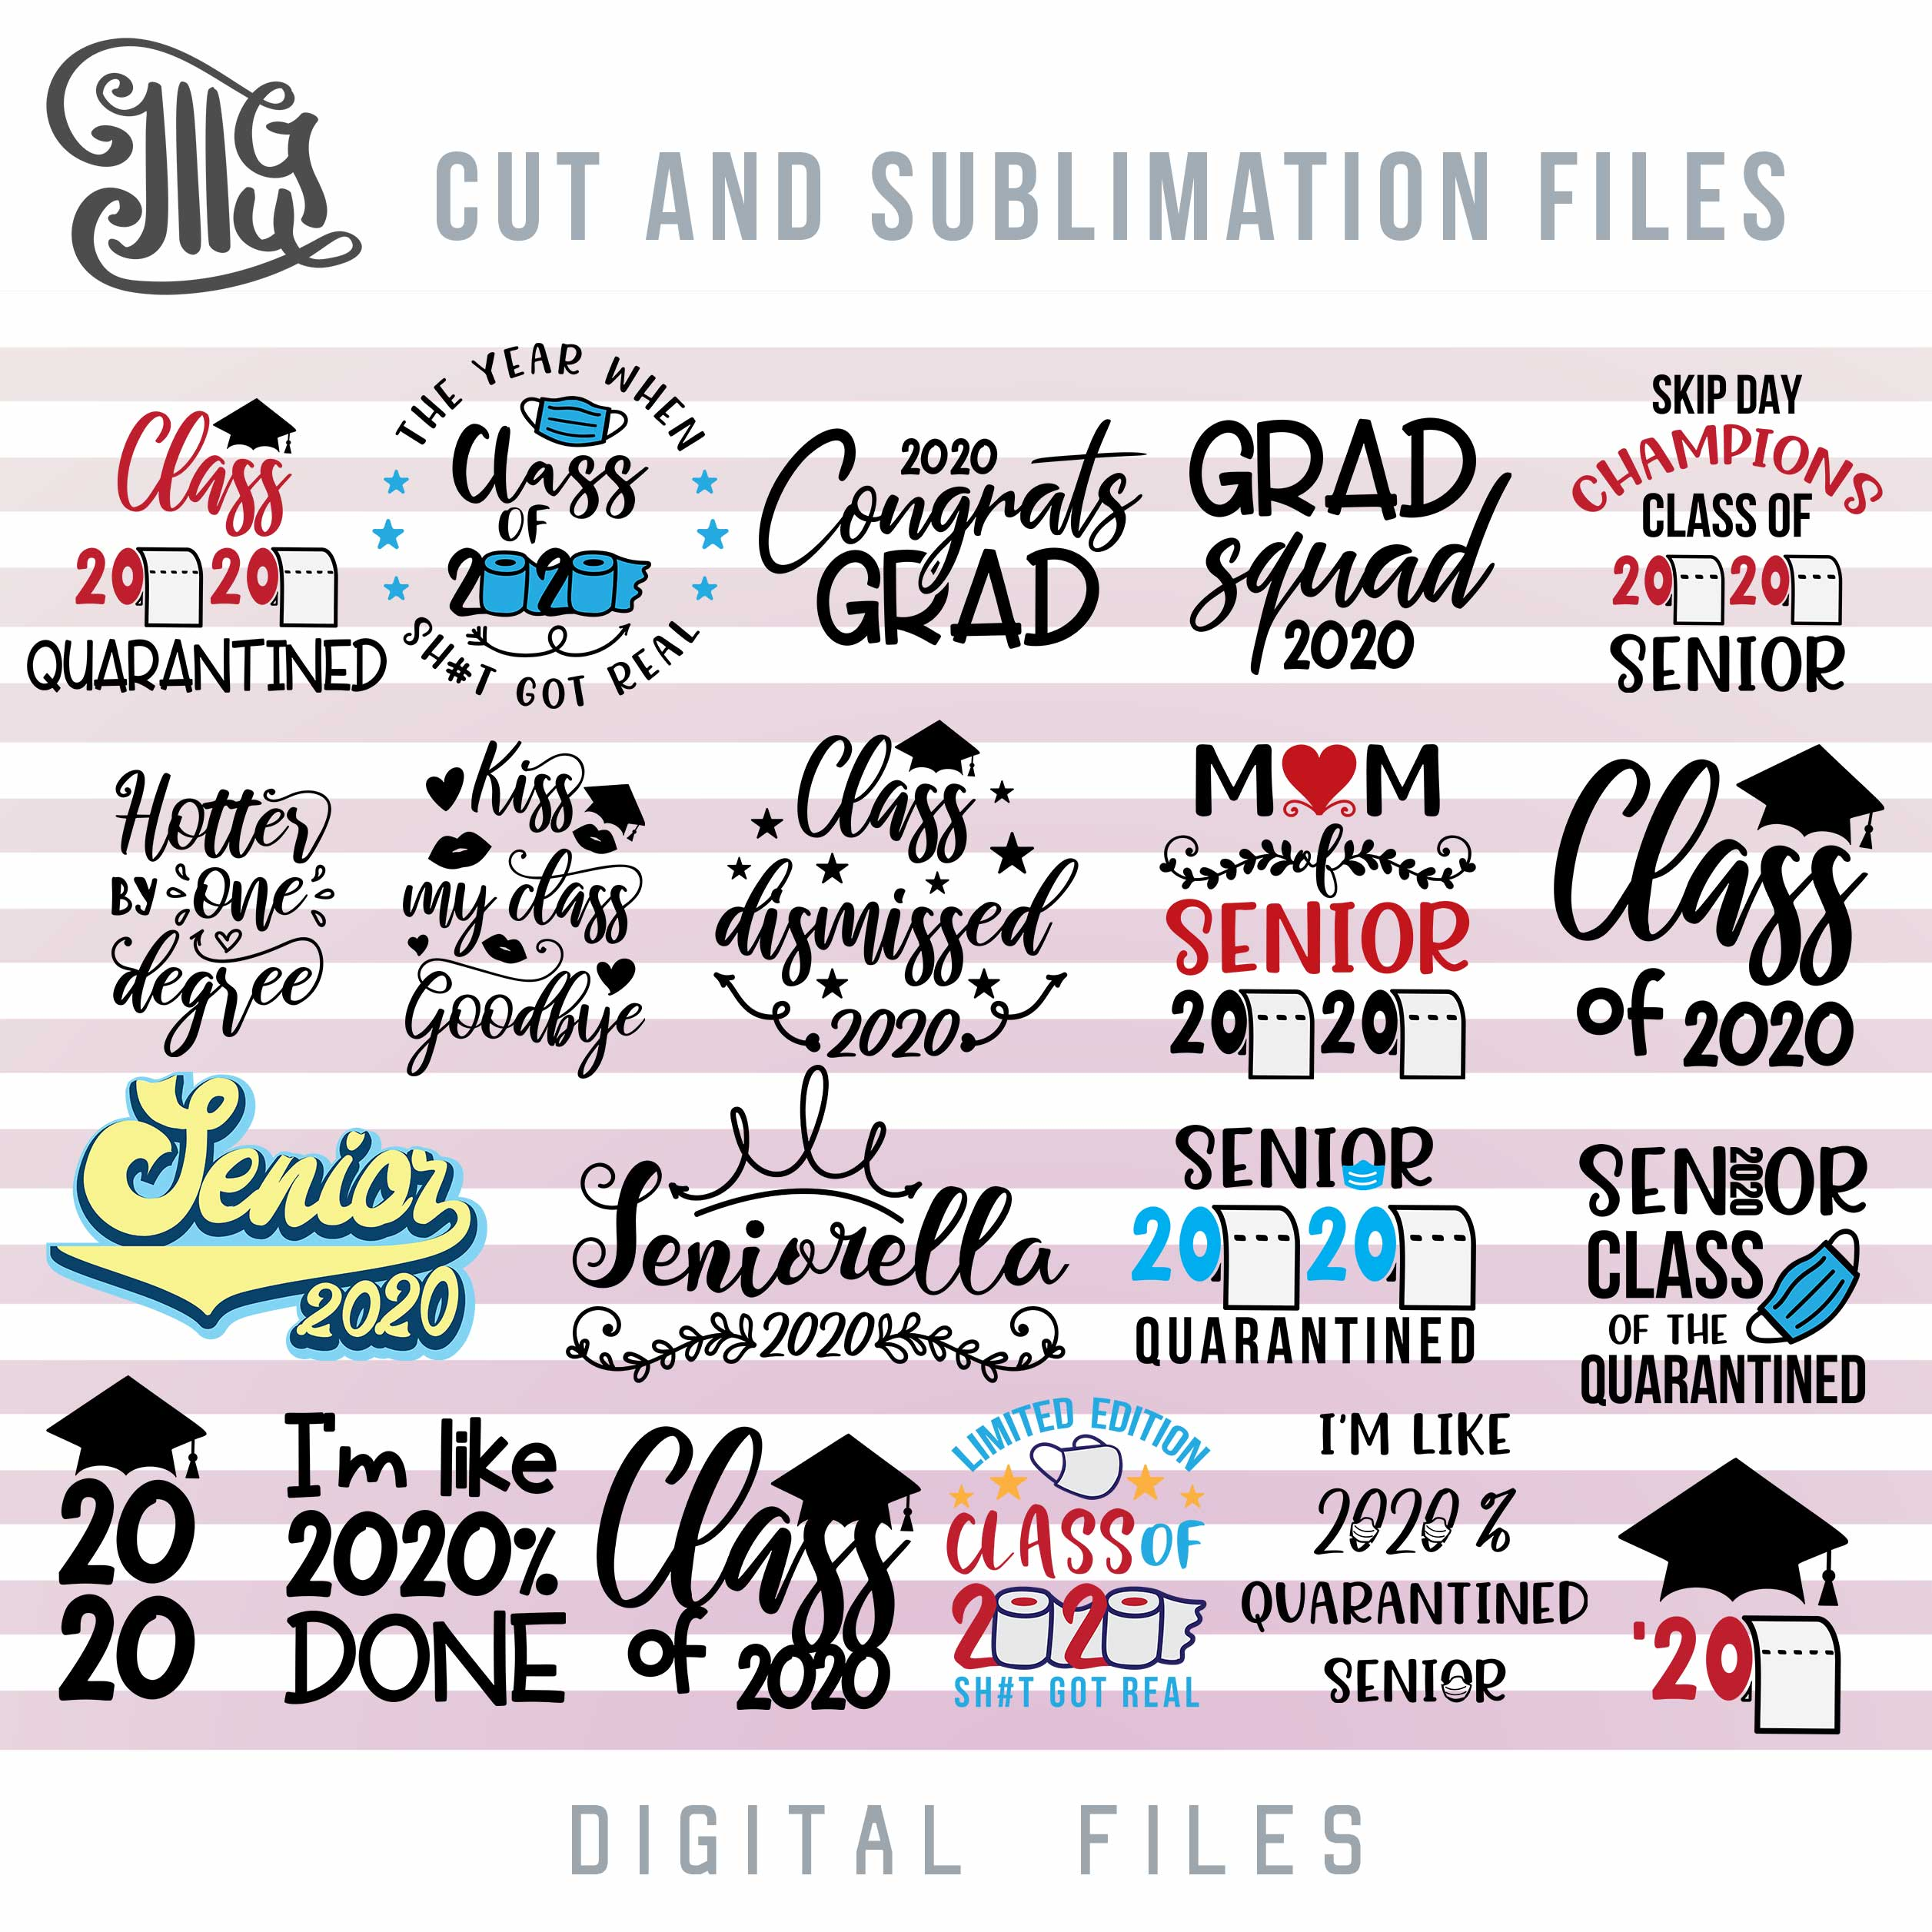 Quarantine Senior 2020 Svg Bundle, Class of 2020 Svg Cut Files, Graduation Sublimation Images, school svg-by Illustrator Guru